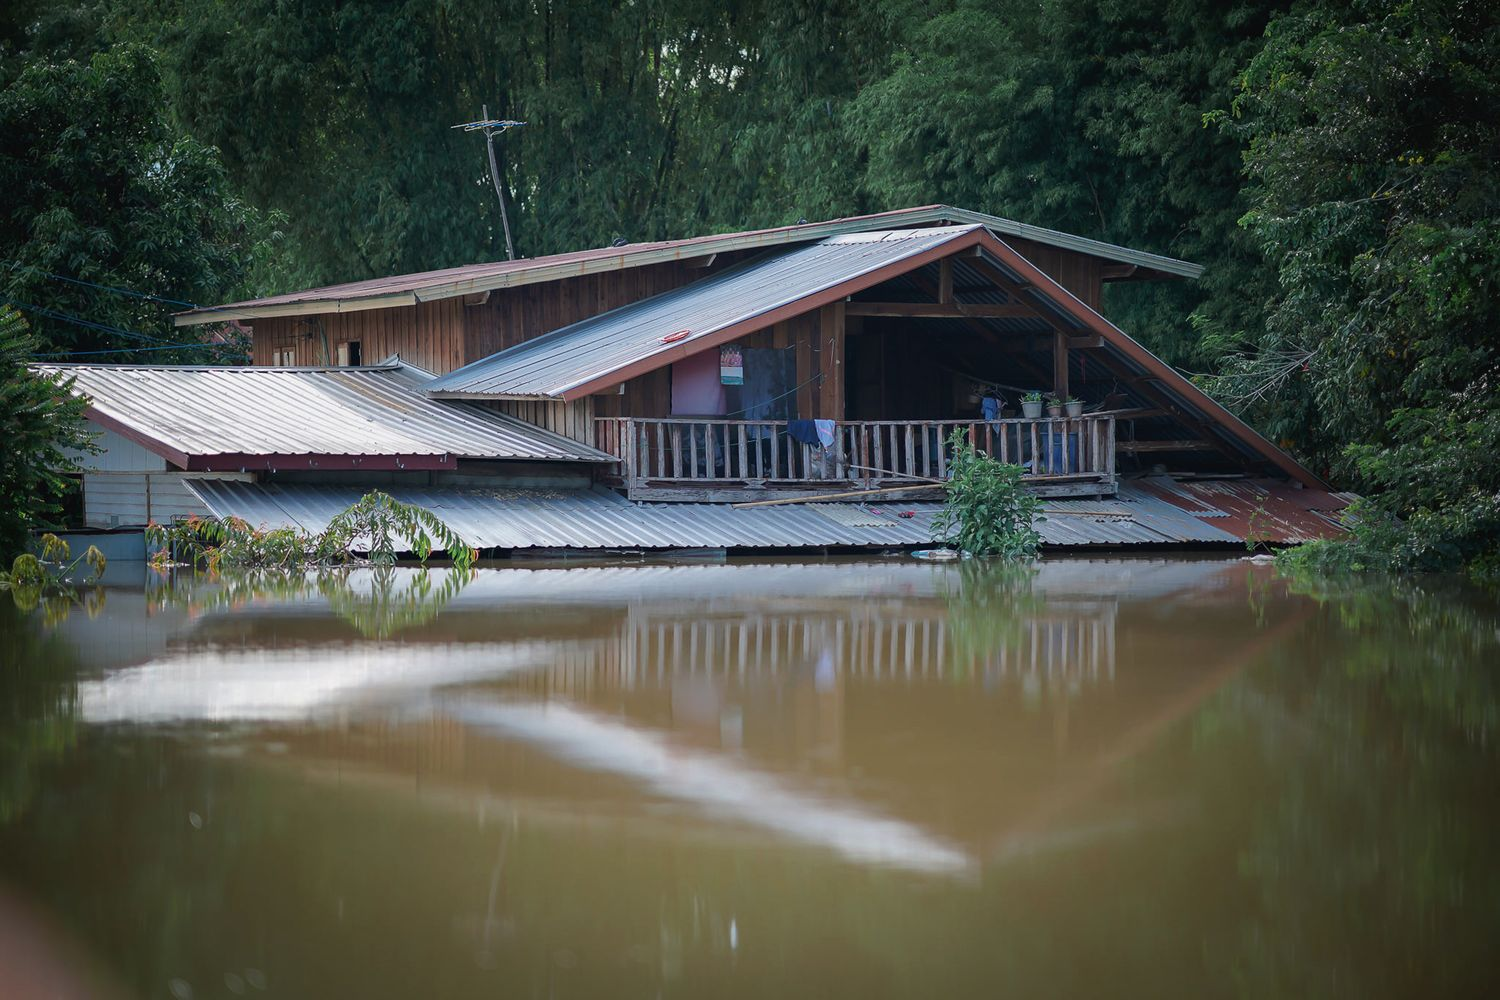 The situation in Phibun Mangsahan district, Ubon Ratchathani province, on Sept 12. (Photo from ณัฐพงศ์ วณฺณโสภโณ Facebook)